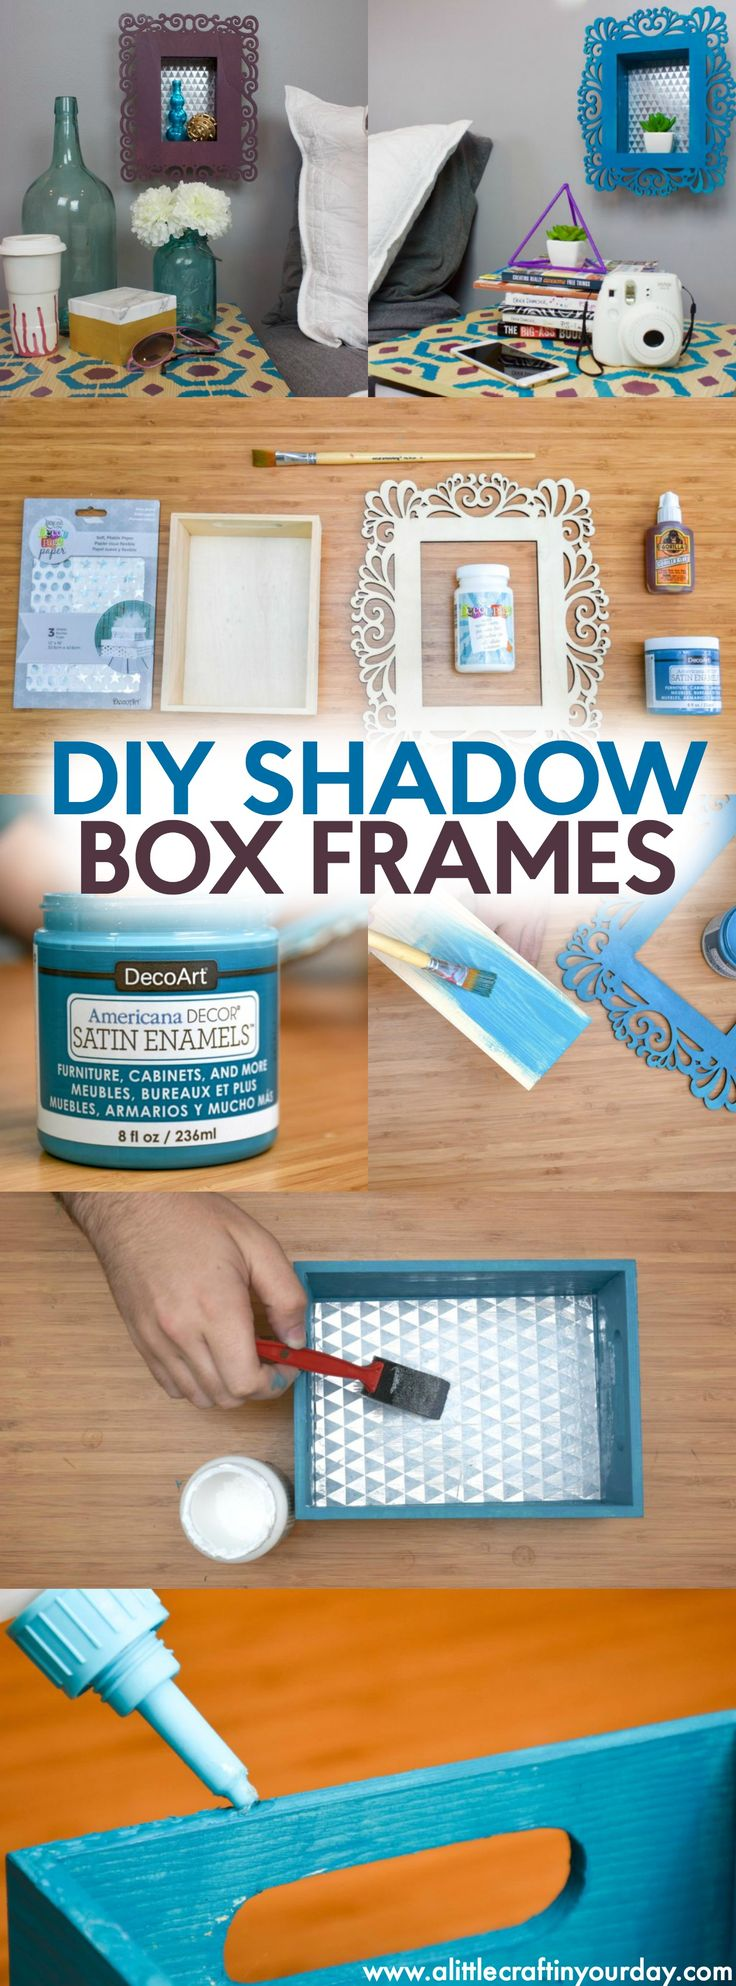 DIY Shadow Box Frames with Americana Decor Satin Enamels | A Little Craft In Your Day